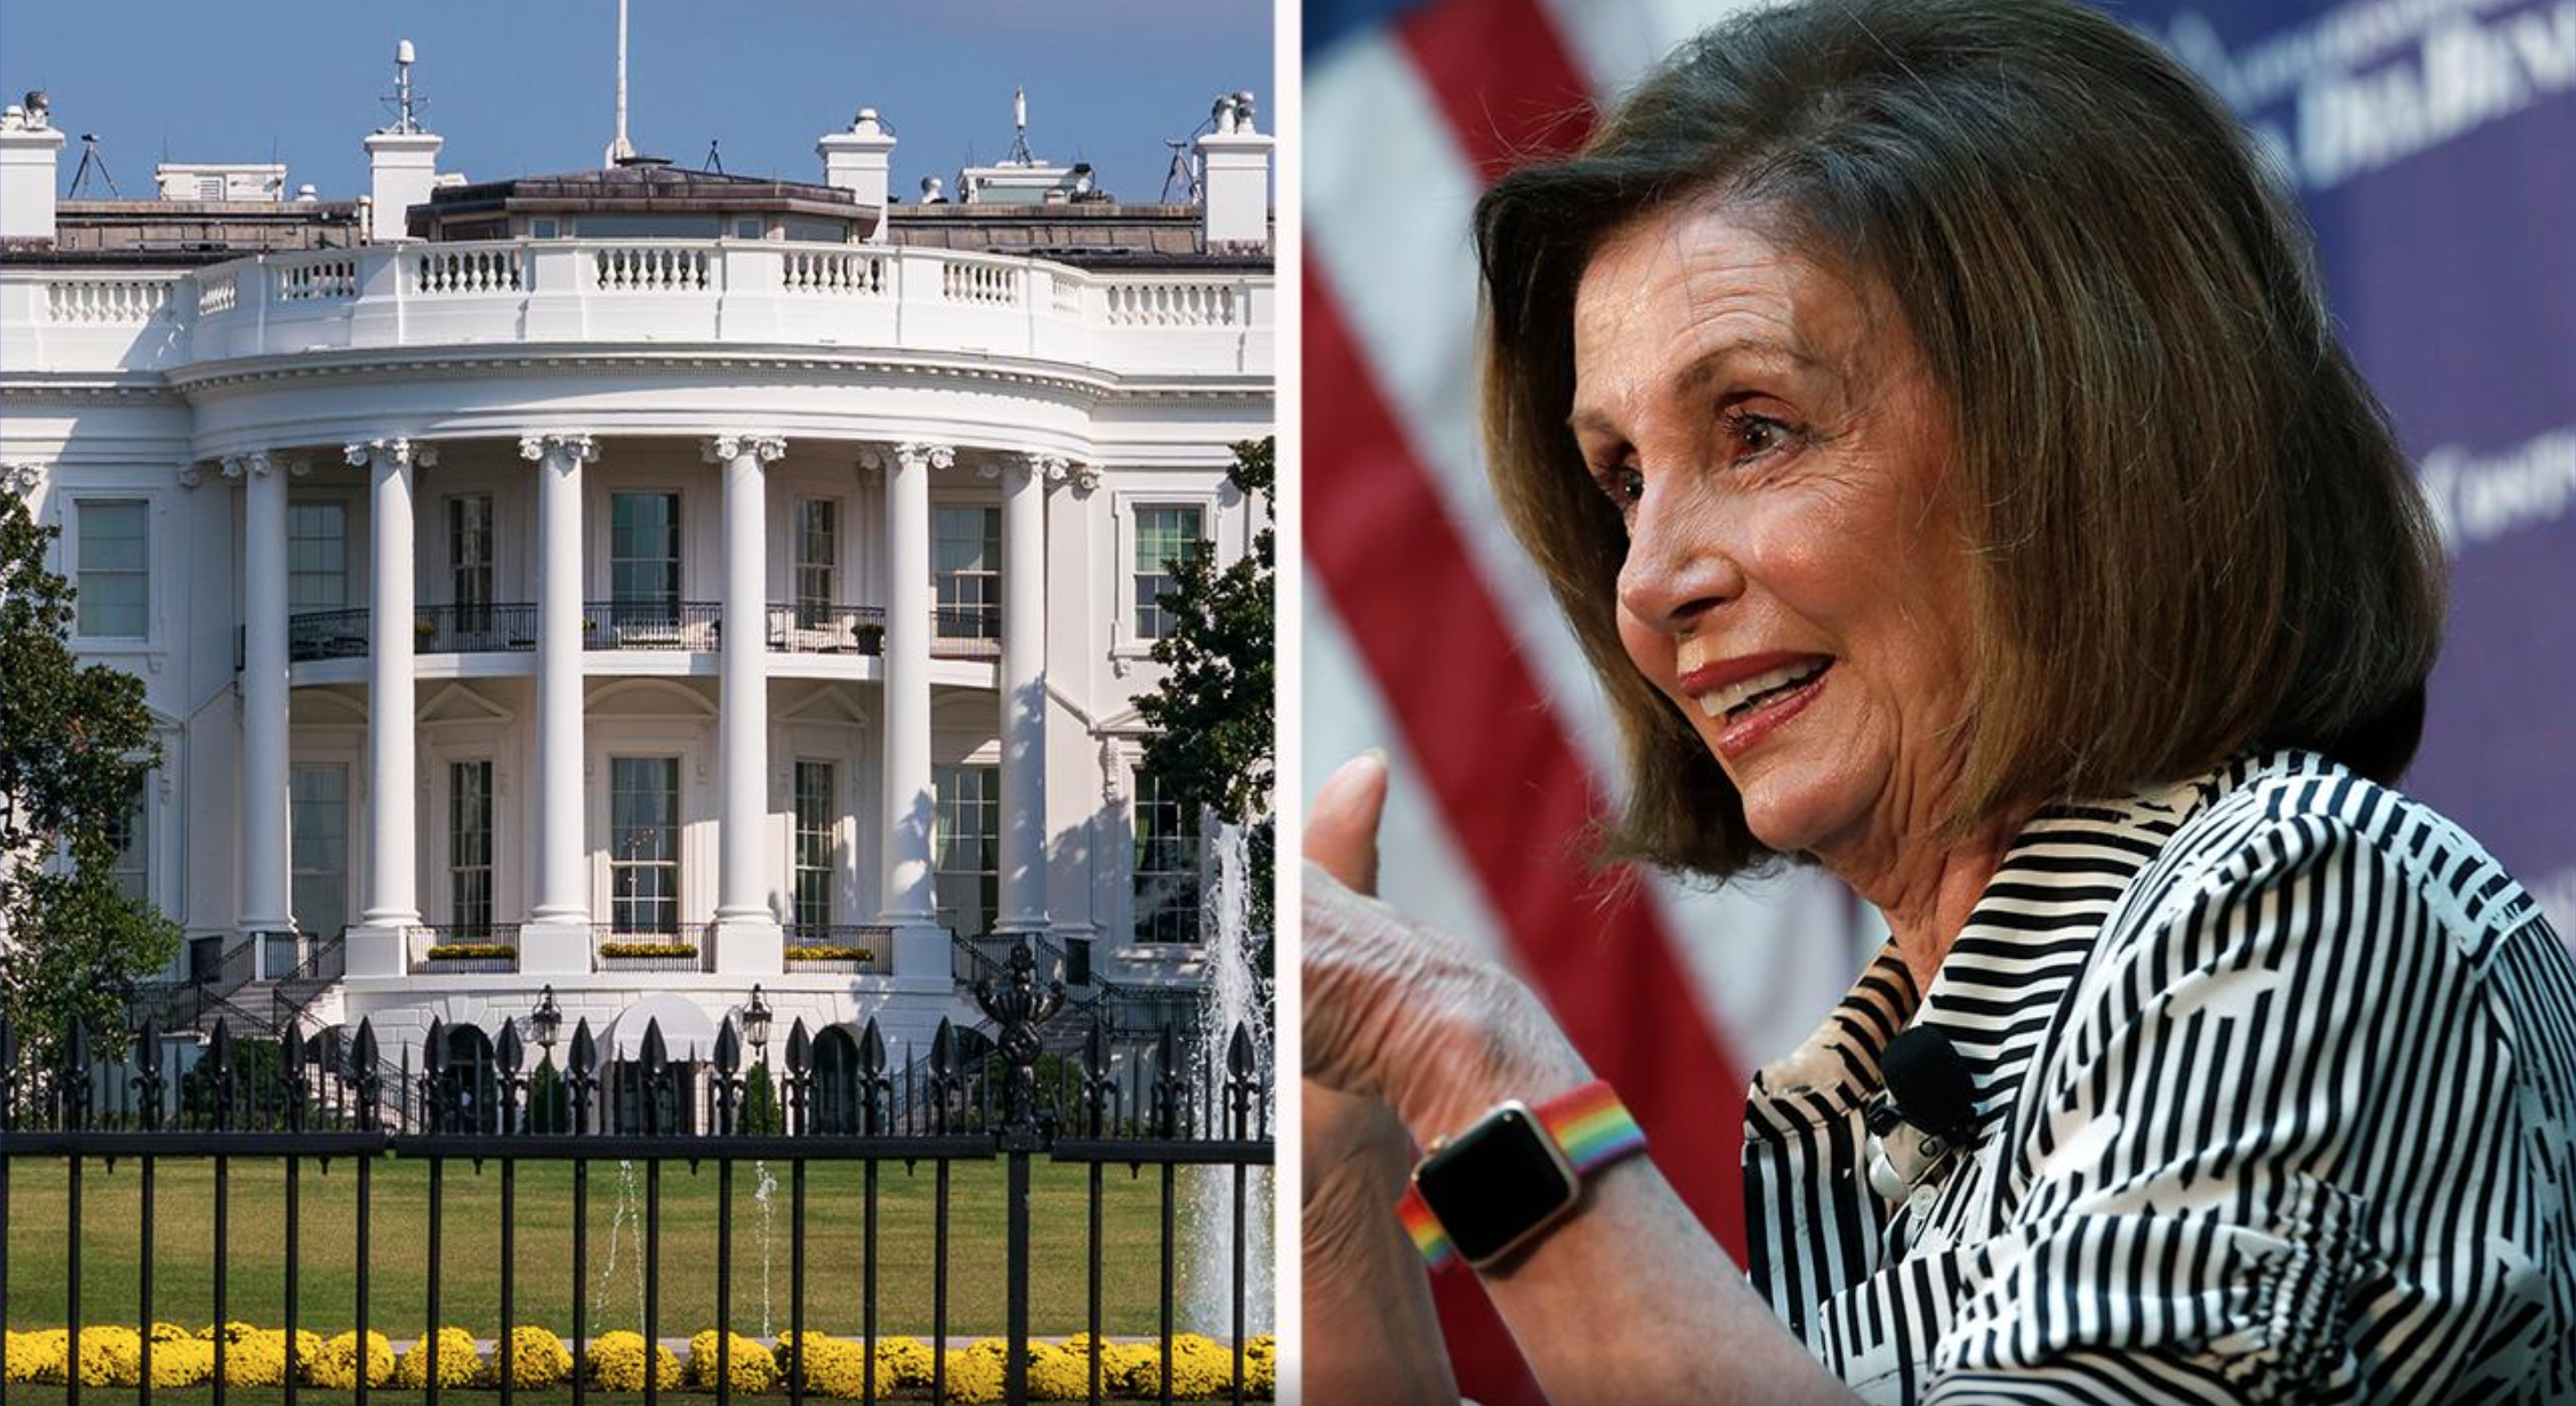 Former prosecutor Robert Ray on impeachment push: Pelosi now pursuing 'what she said she wouldn't do'